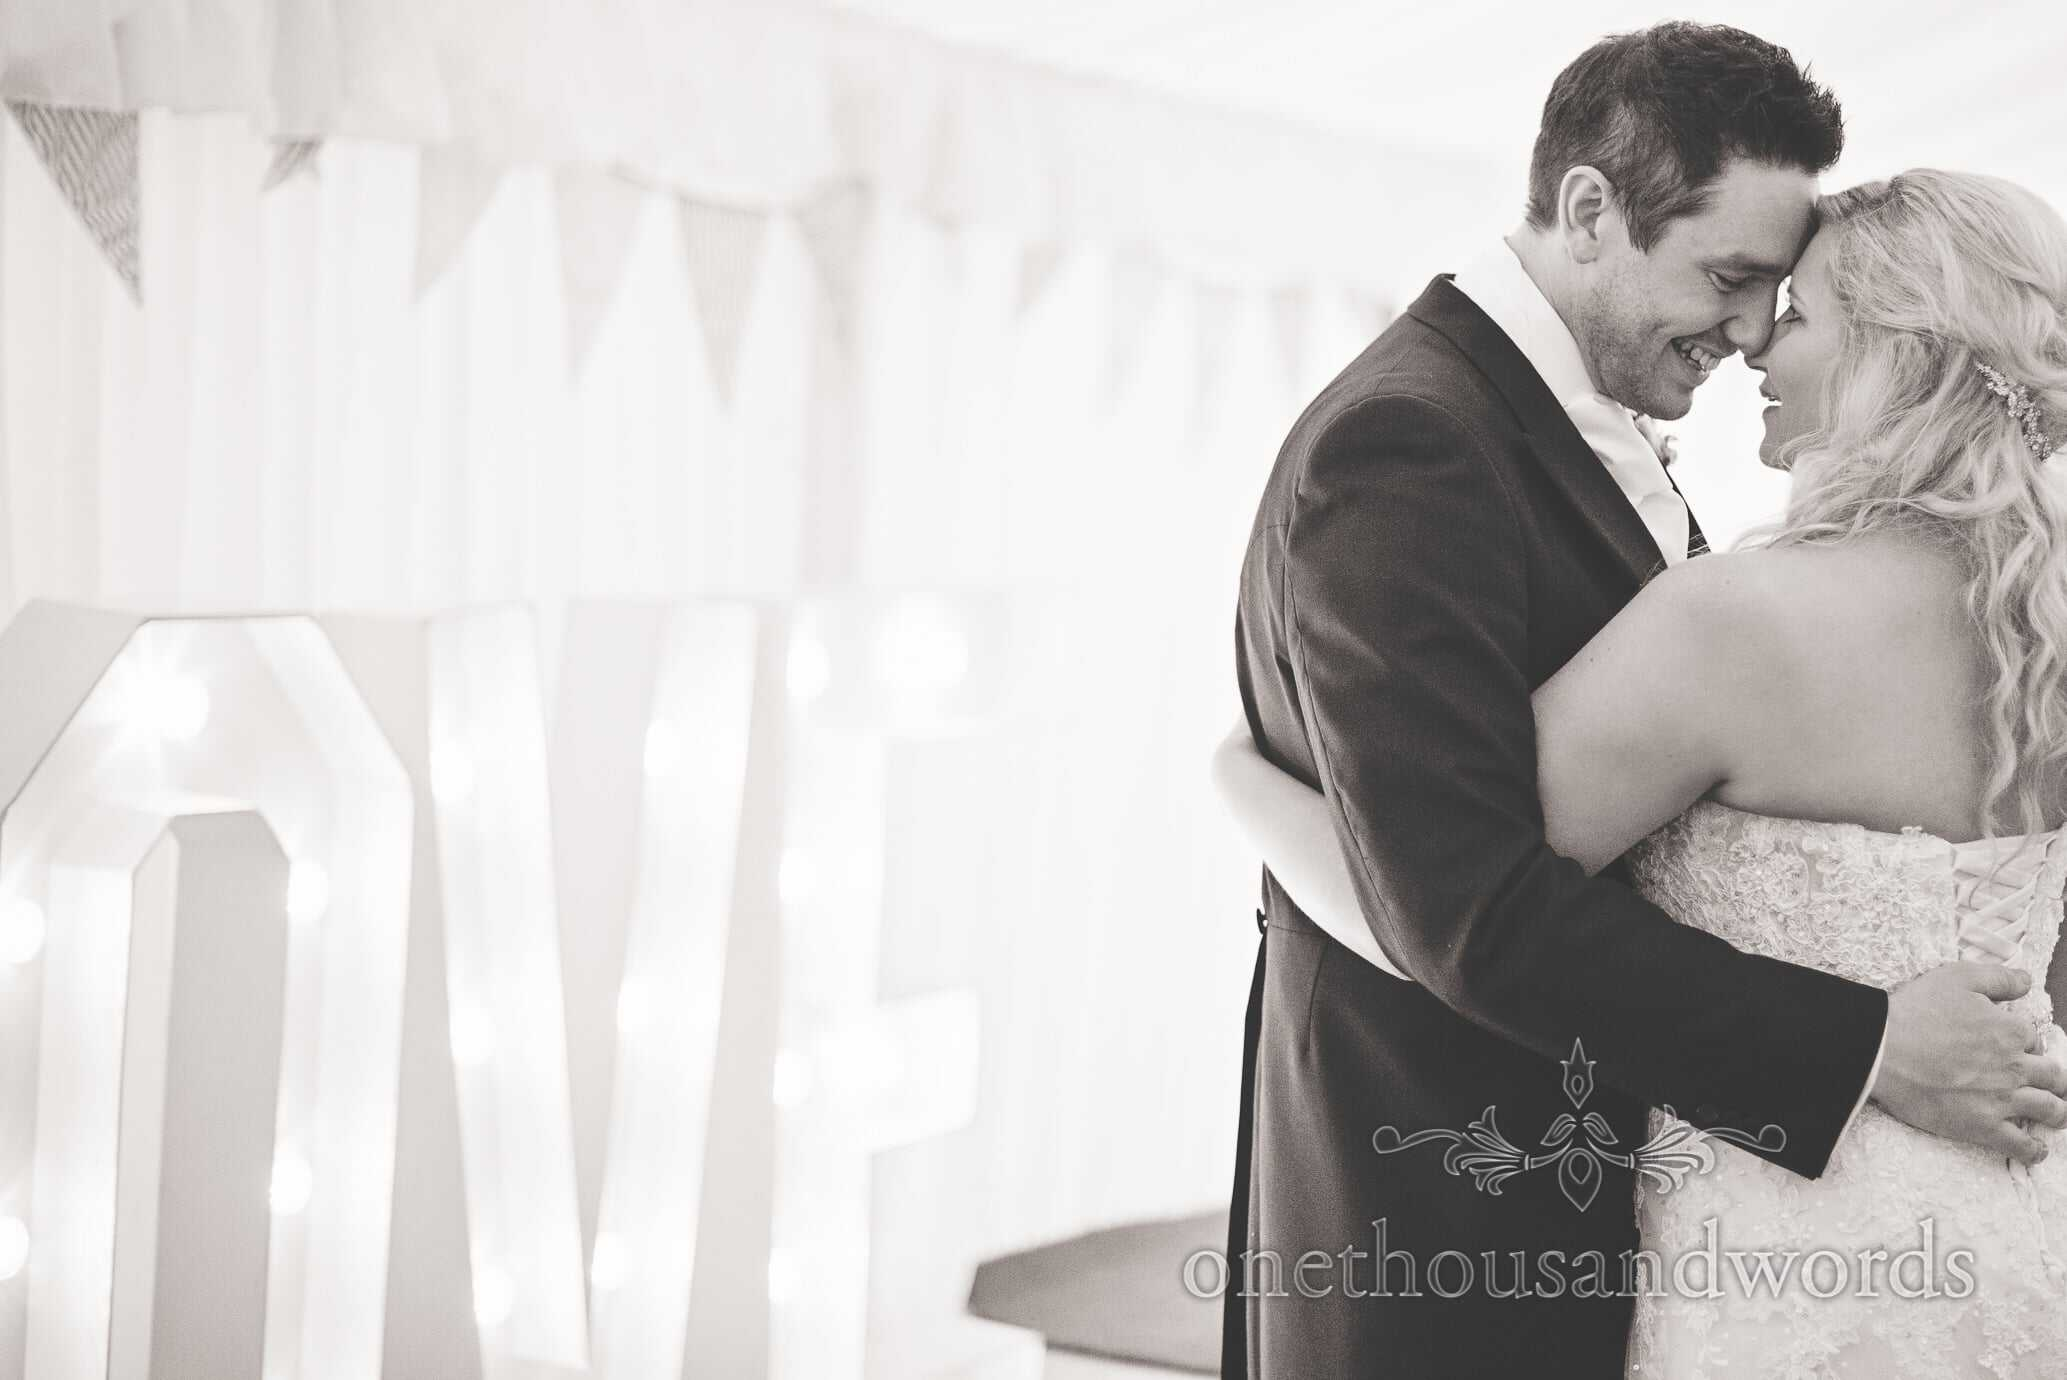 Black and white wedding photograph of bride and groom with love sign